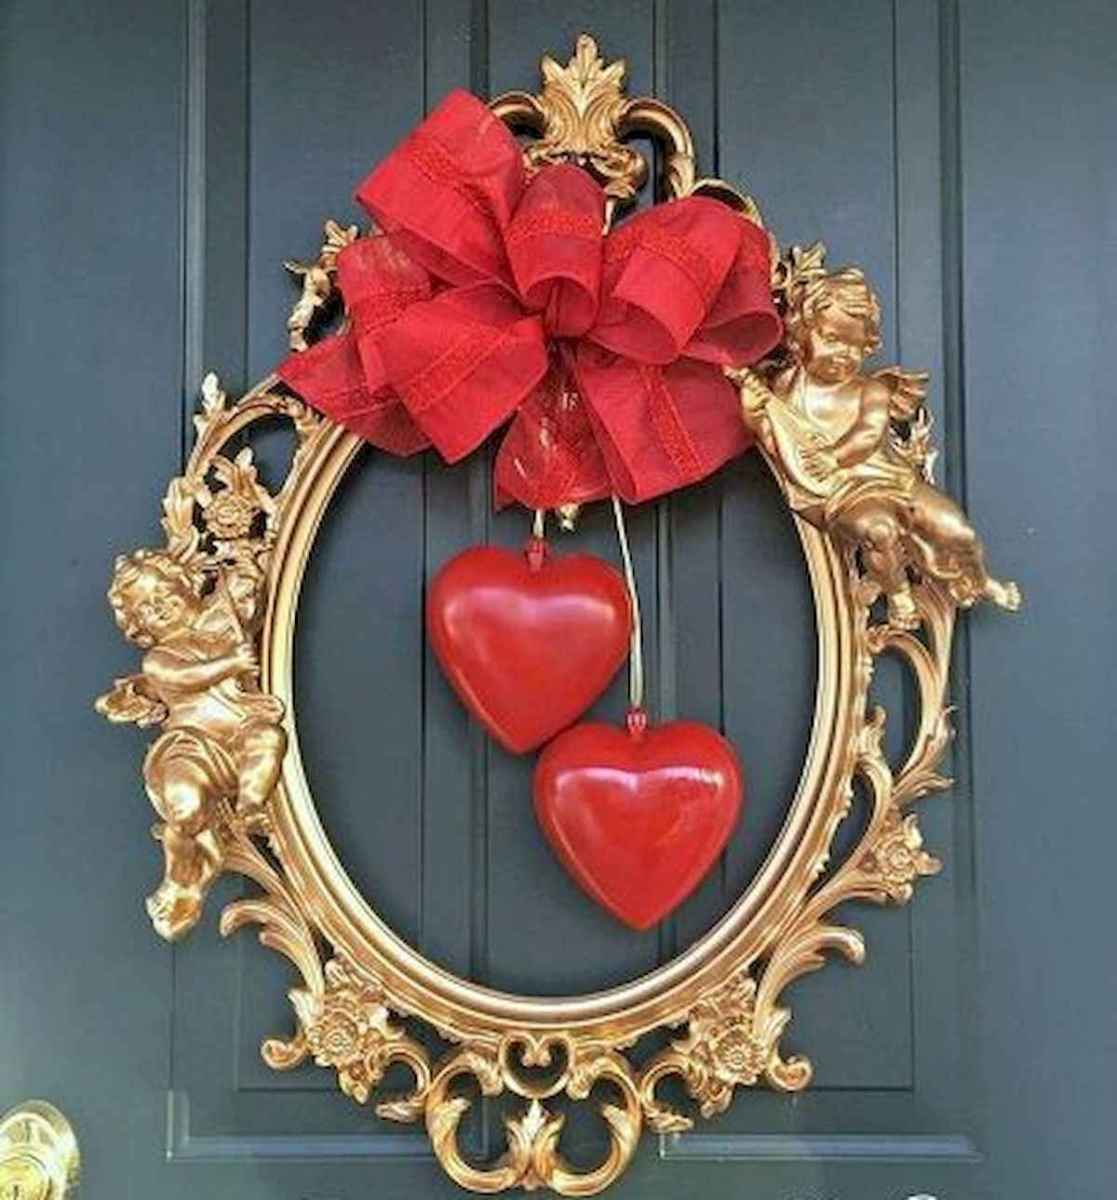 110 easy diy valentines decorations ideas and remodel (24)